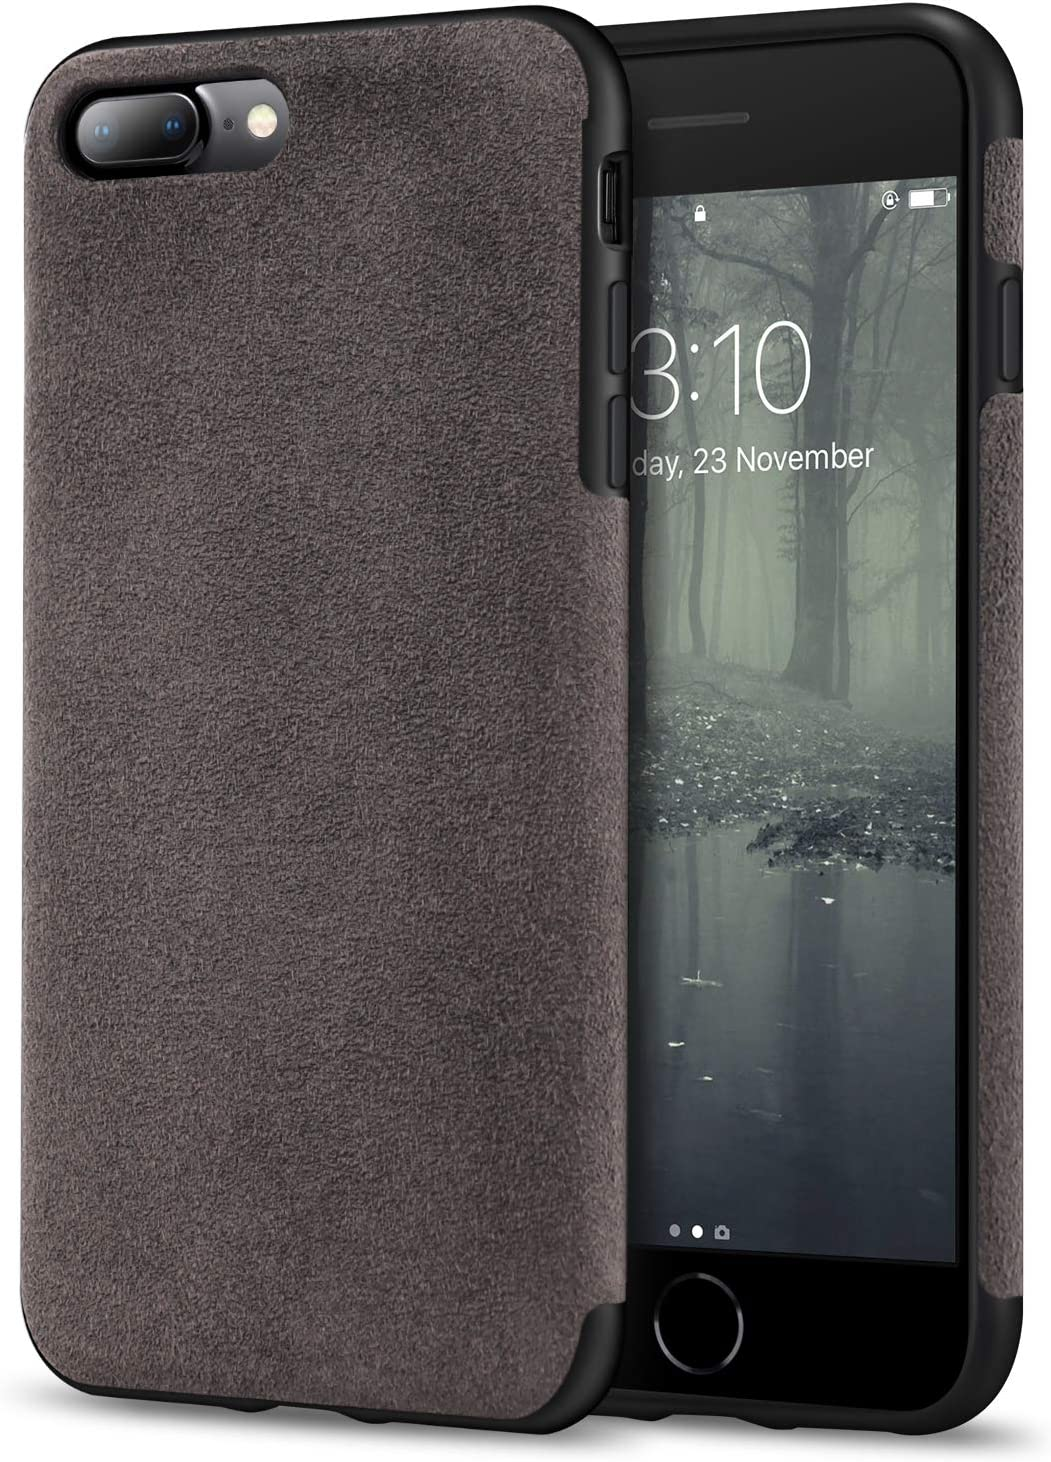 TENDLIN Compatible with iPhone 7 Plus Case/iPhone 8 Plus Case Premium Suede-Like Material Design Leather Hybrid Comfortable Grip Soft Cover Case Compatible with iPhone 7 Plus/iPhone 8 Plus (Brown)